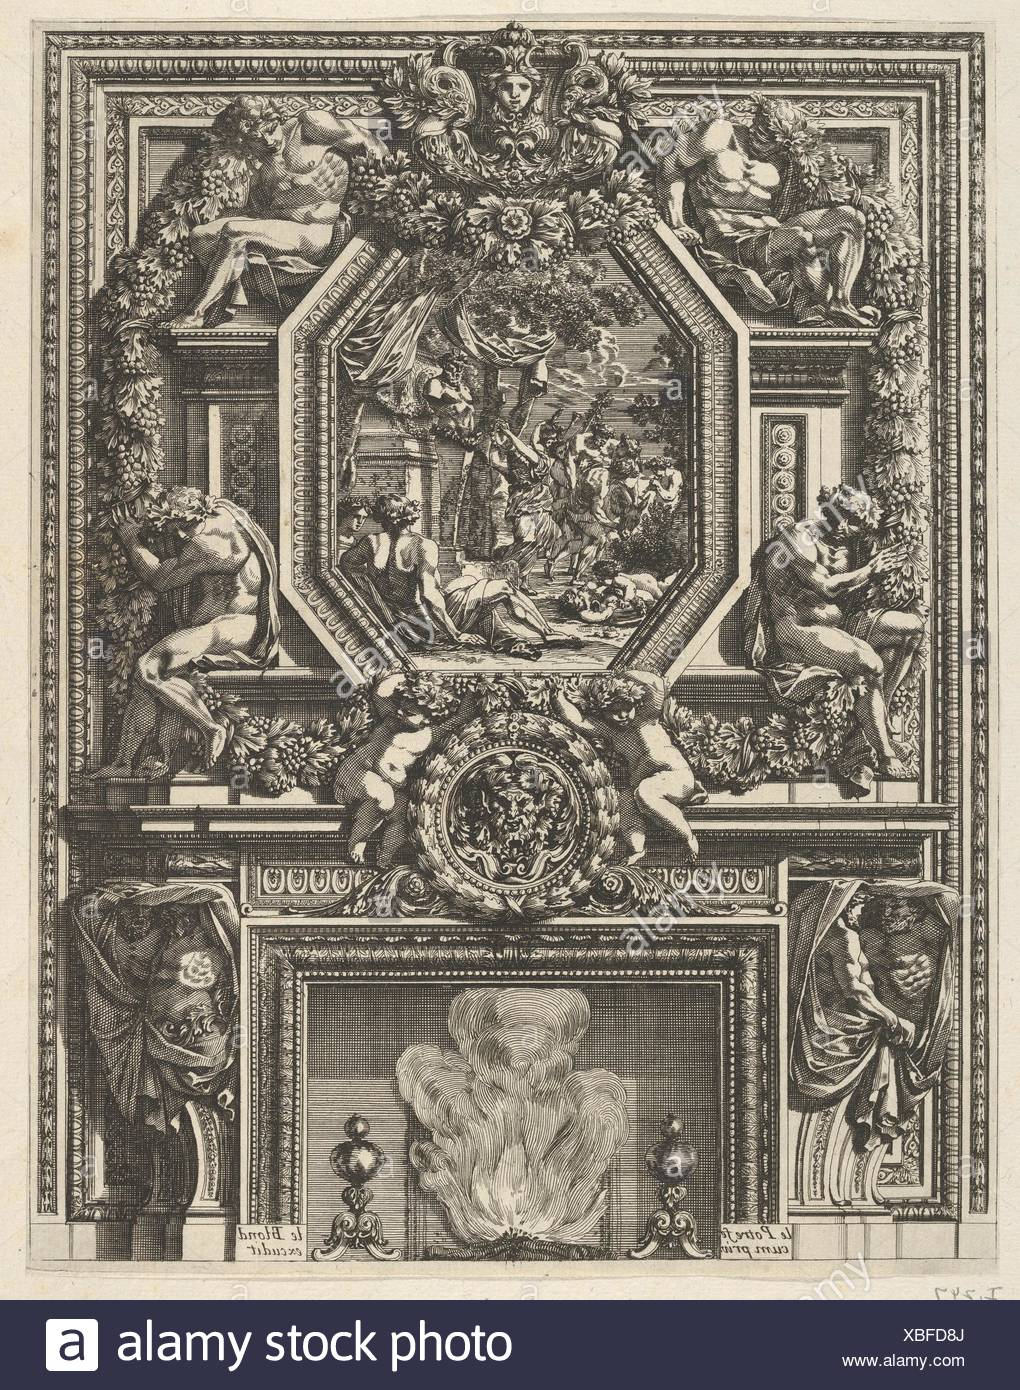 Chimney with a Bacchanal over the Mantle from 'Grandes Cheminée'. Artist and engraver: Jean Le Pautre (French, Paris 1618-1682 Paris); Publisher: - Stock Image